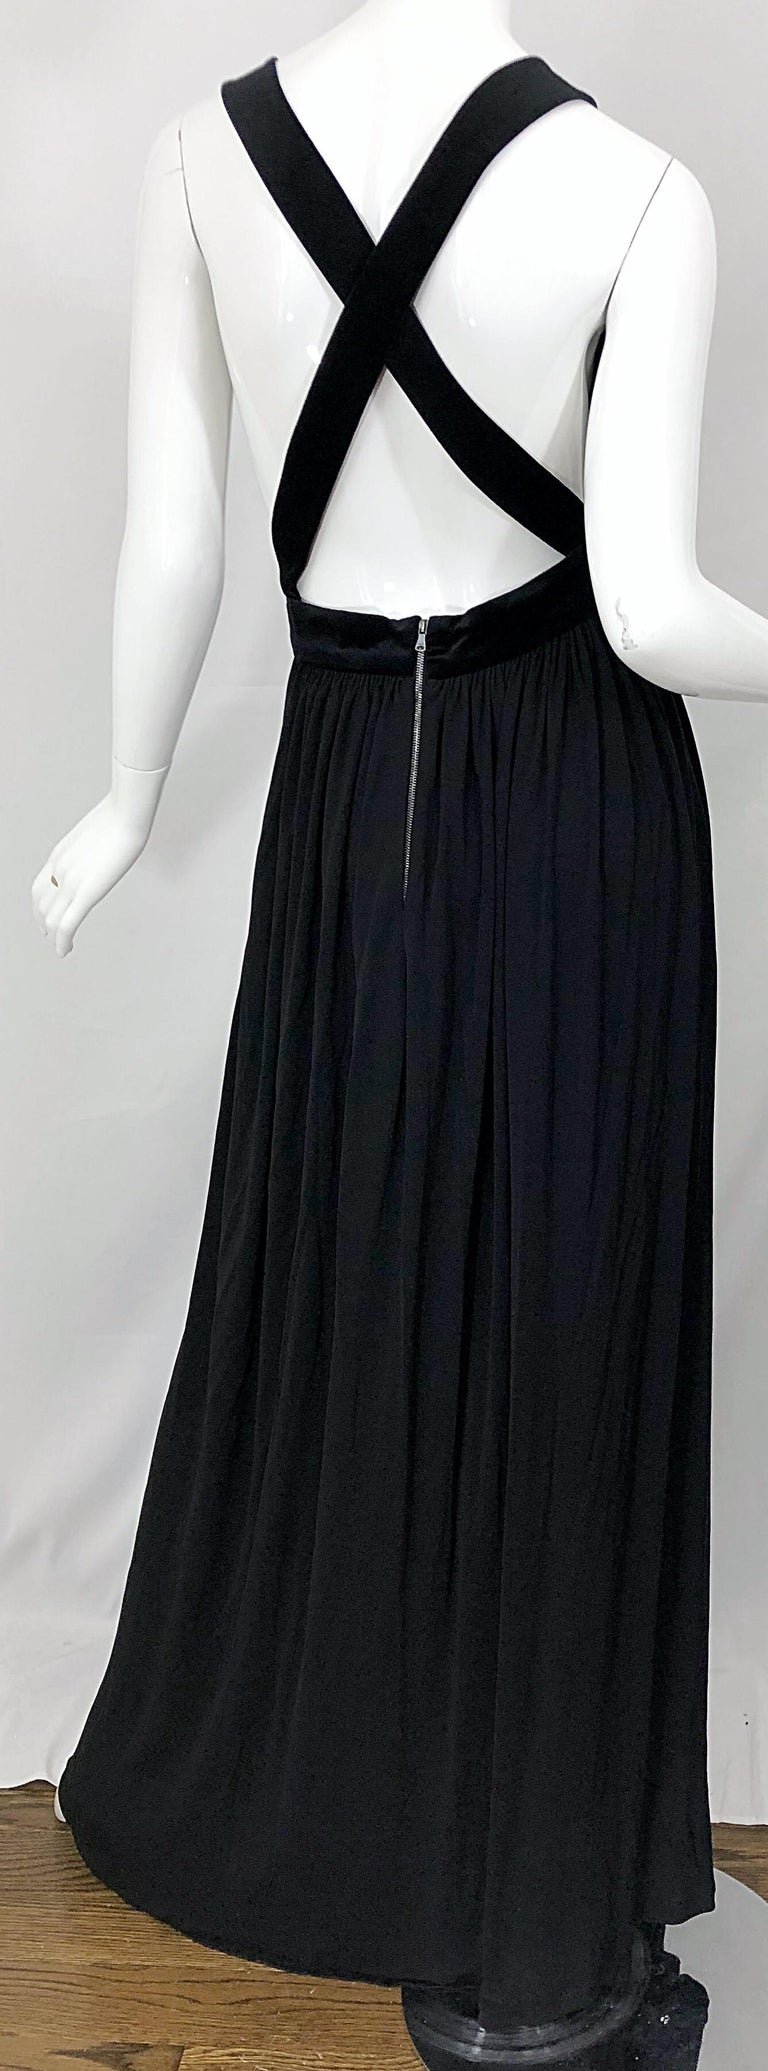 1990s Dolce & Gabbana D&G Black Plunging Sexy Beaded Sleeveless Vintage 90s Gown For Sale 9